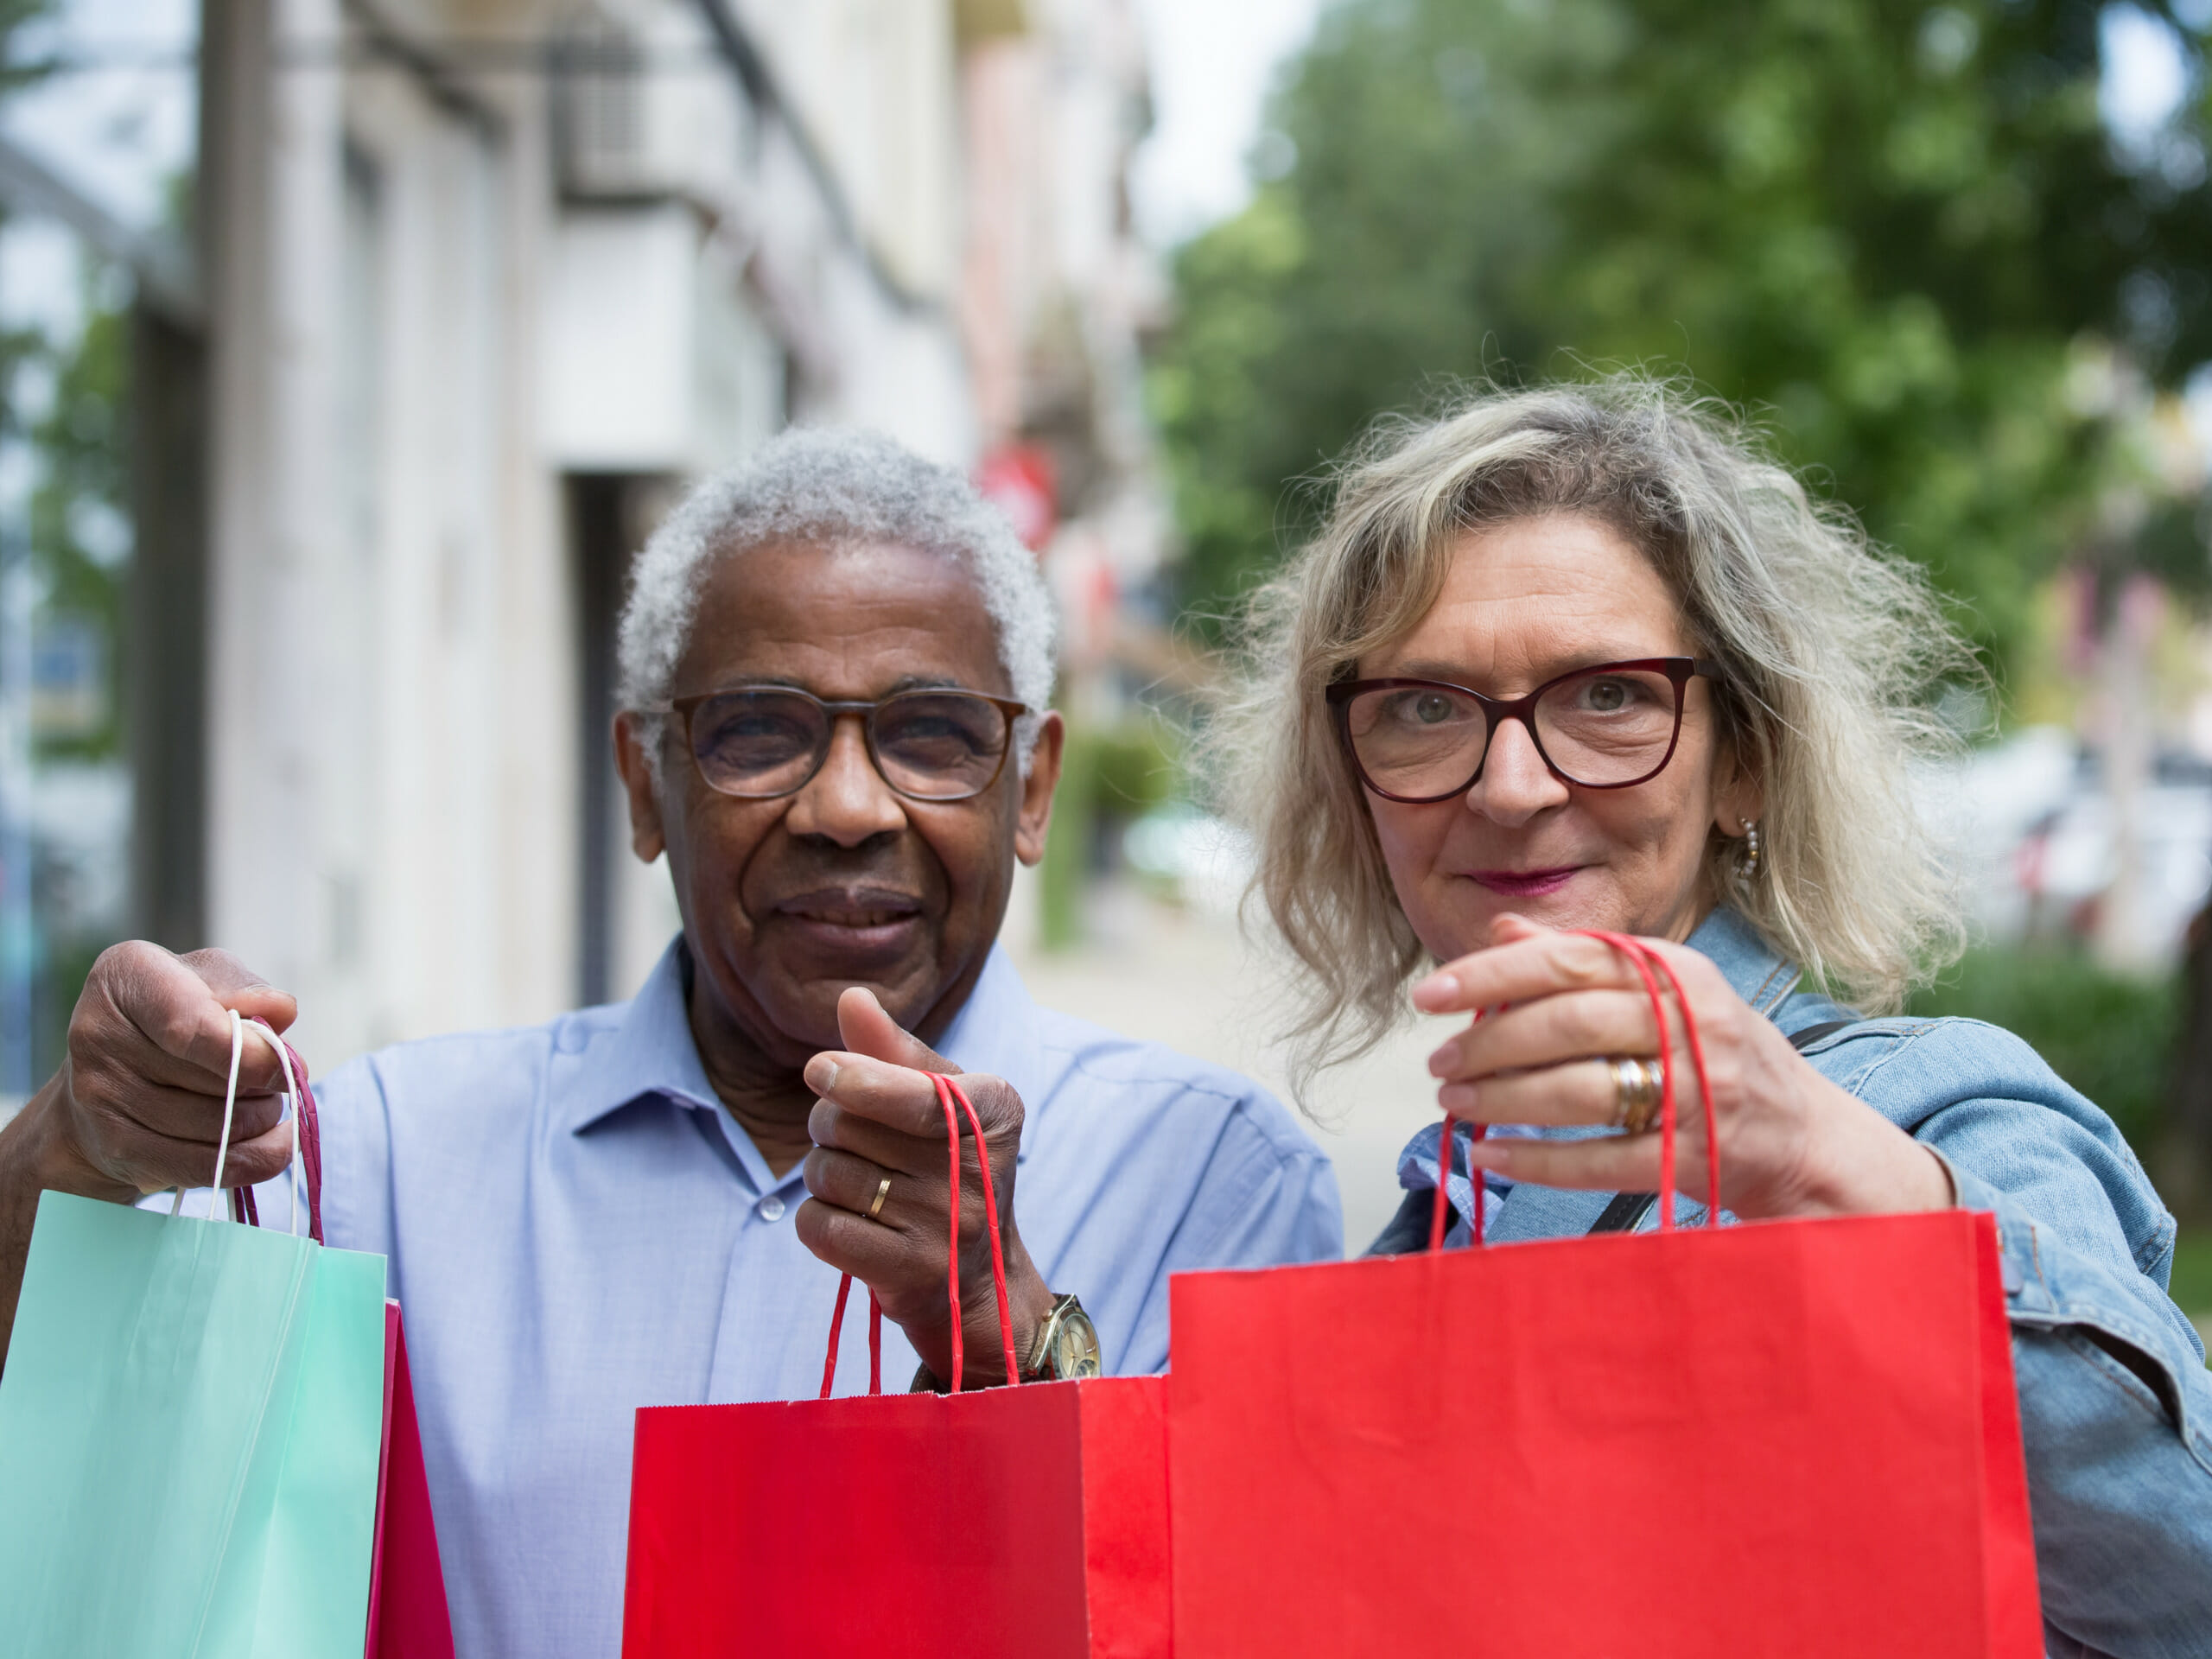 Turn Baby Boomers into New Customers